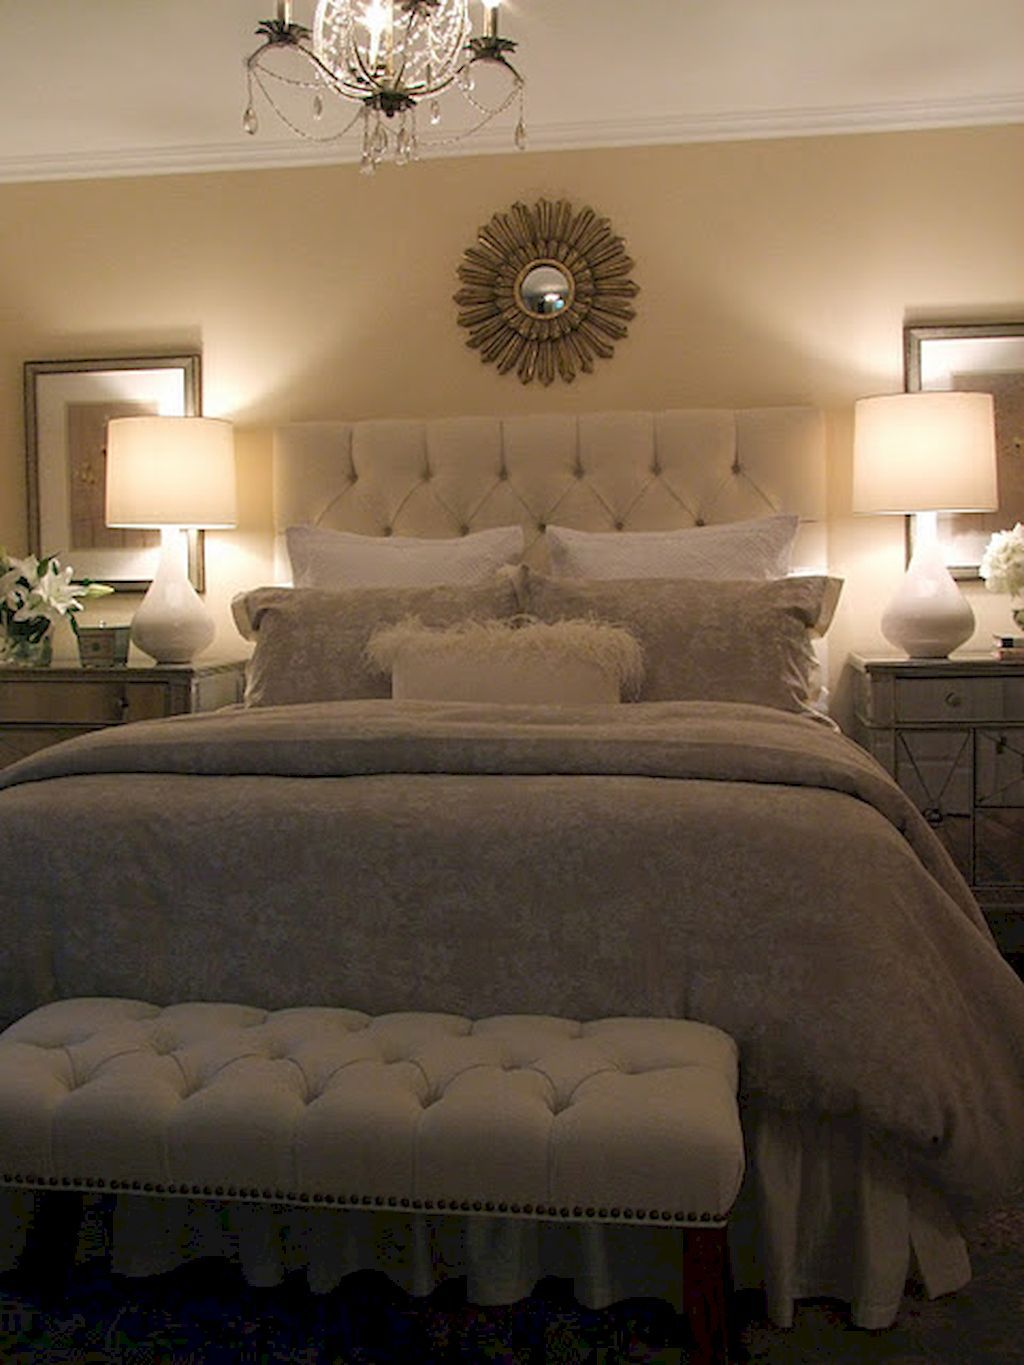 60 Beautiful Master Bedroom Decorating Ideas Master Bedroom Bedroom Master Bedroom Bedroom